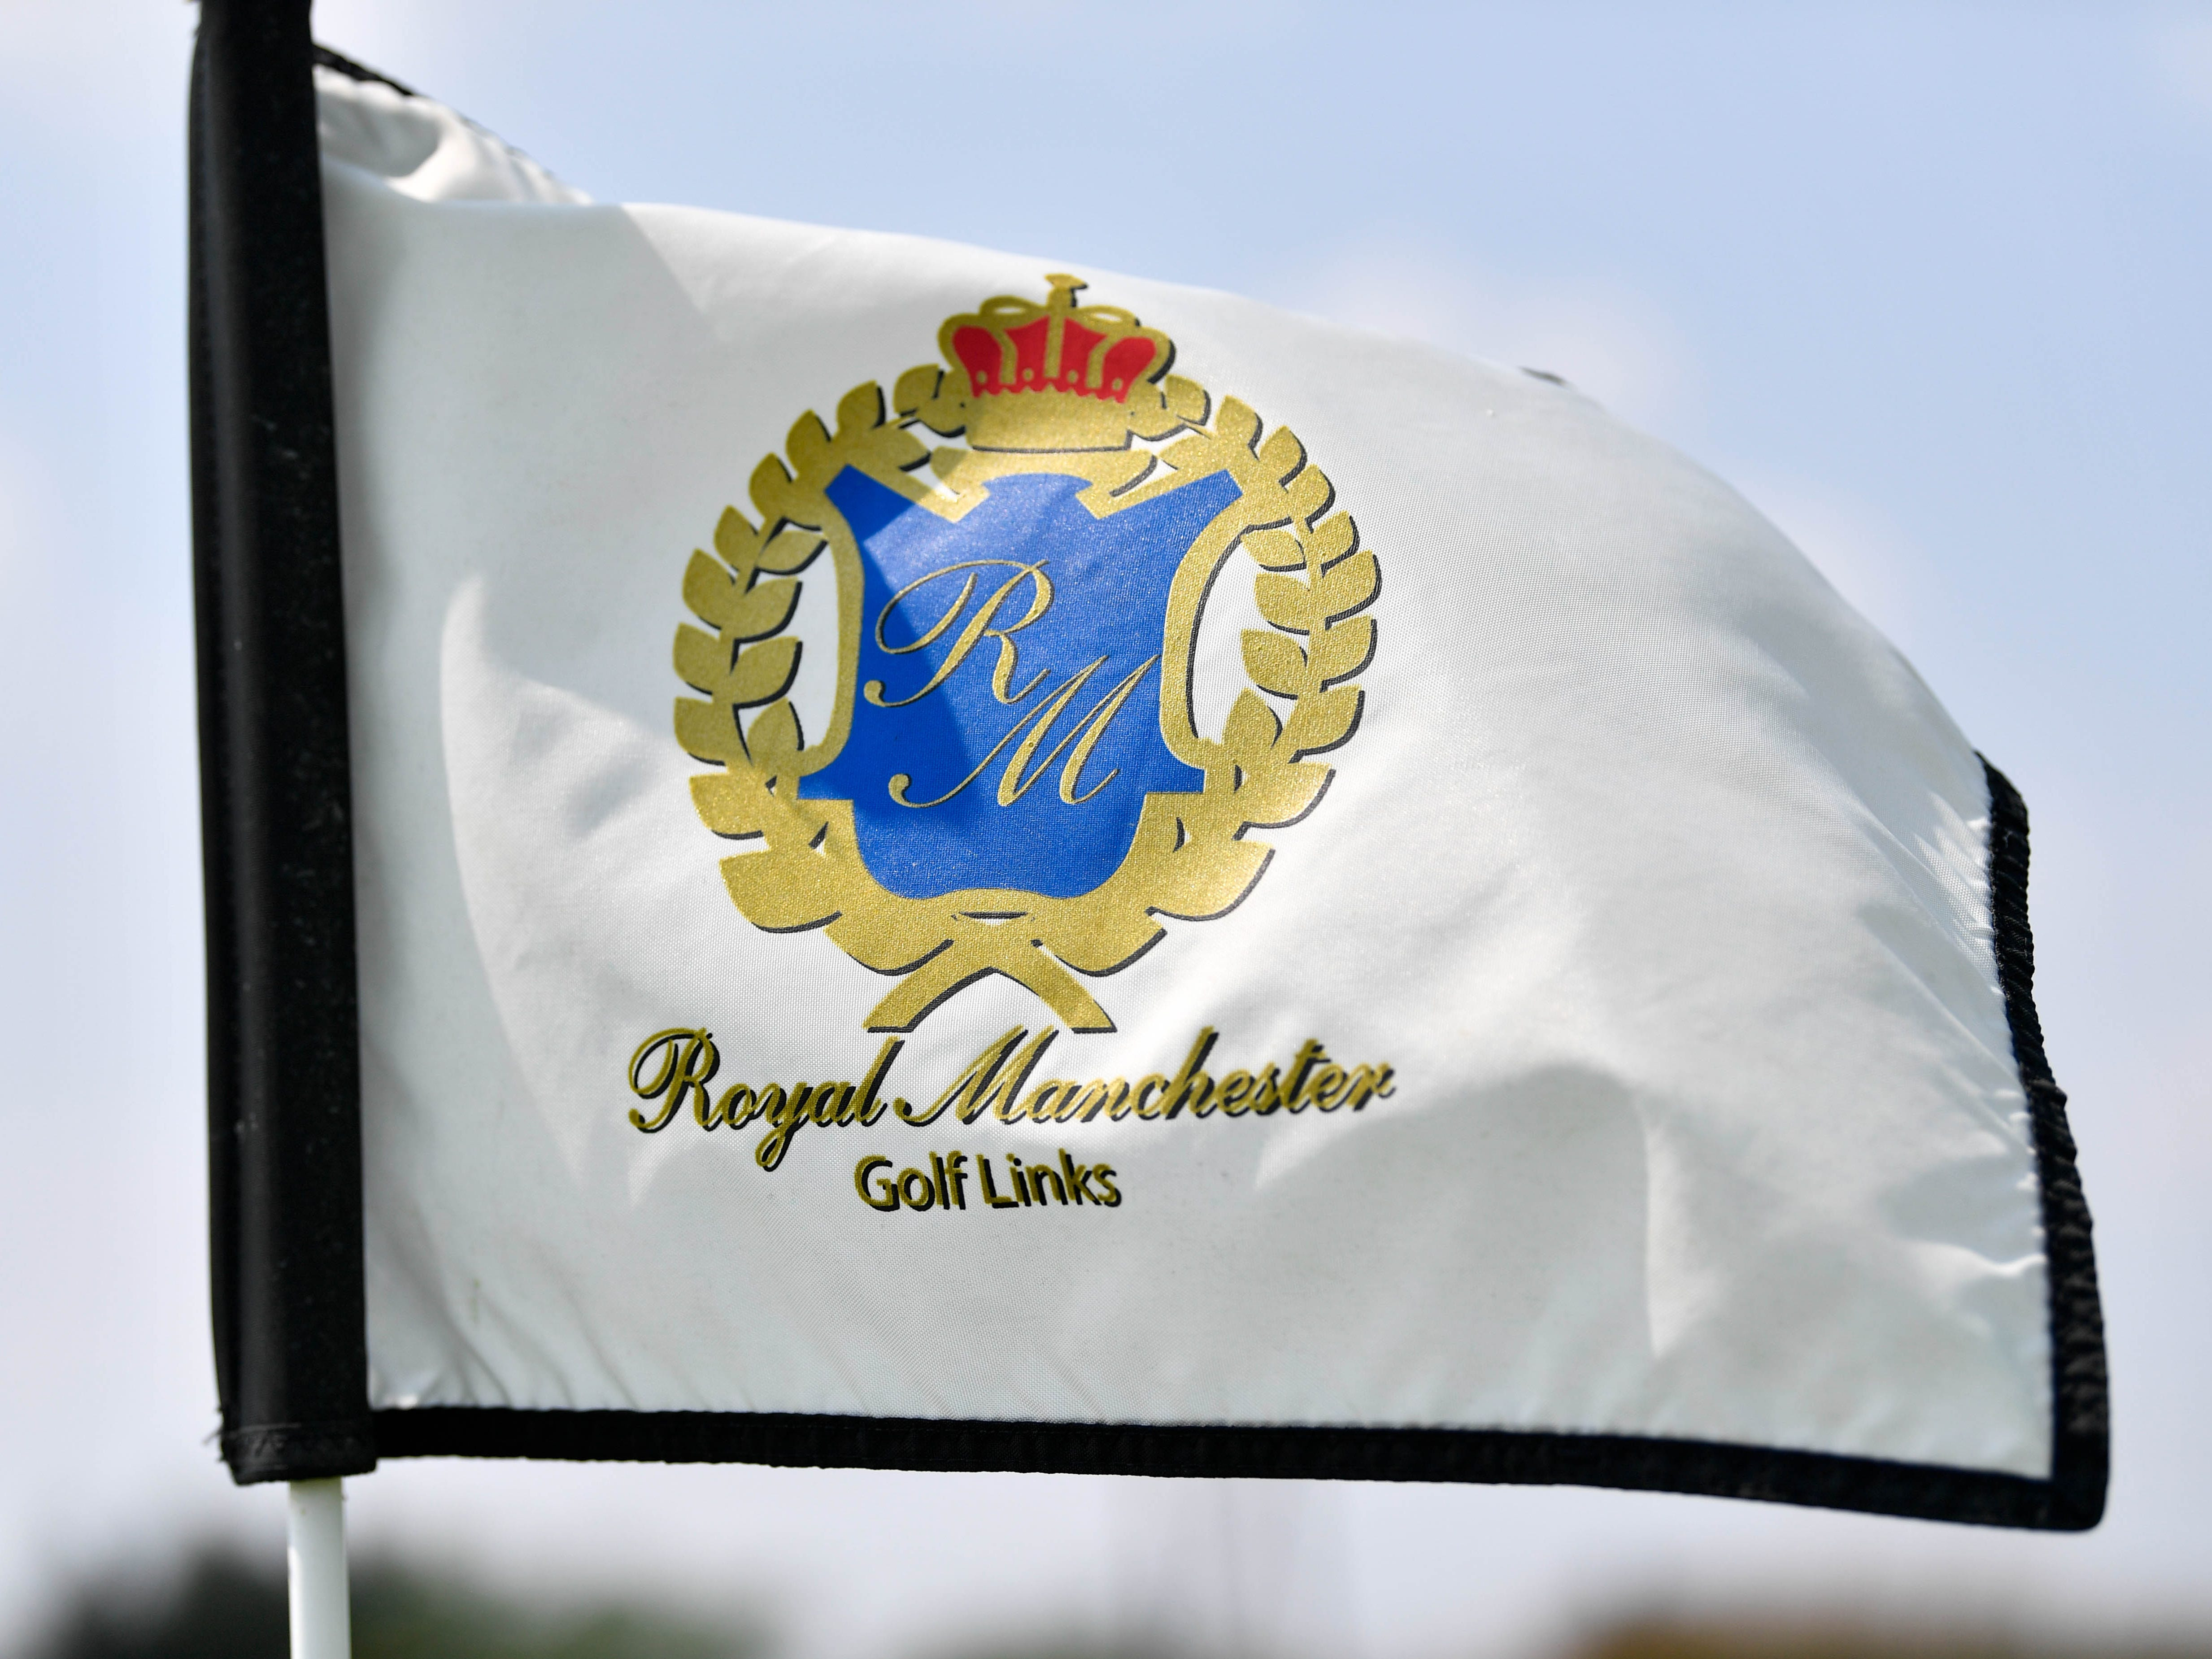 Royal Manchester Golf Links' flags gently wave in the wind as Division I golfers compete on Wednesday, Aug. 16, 2018.